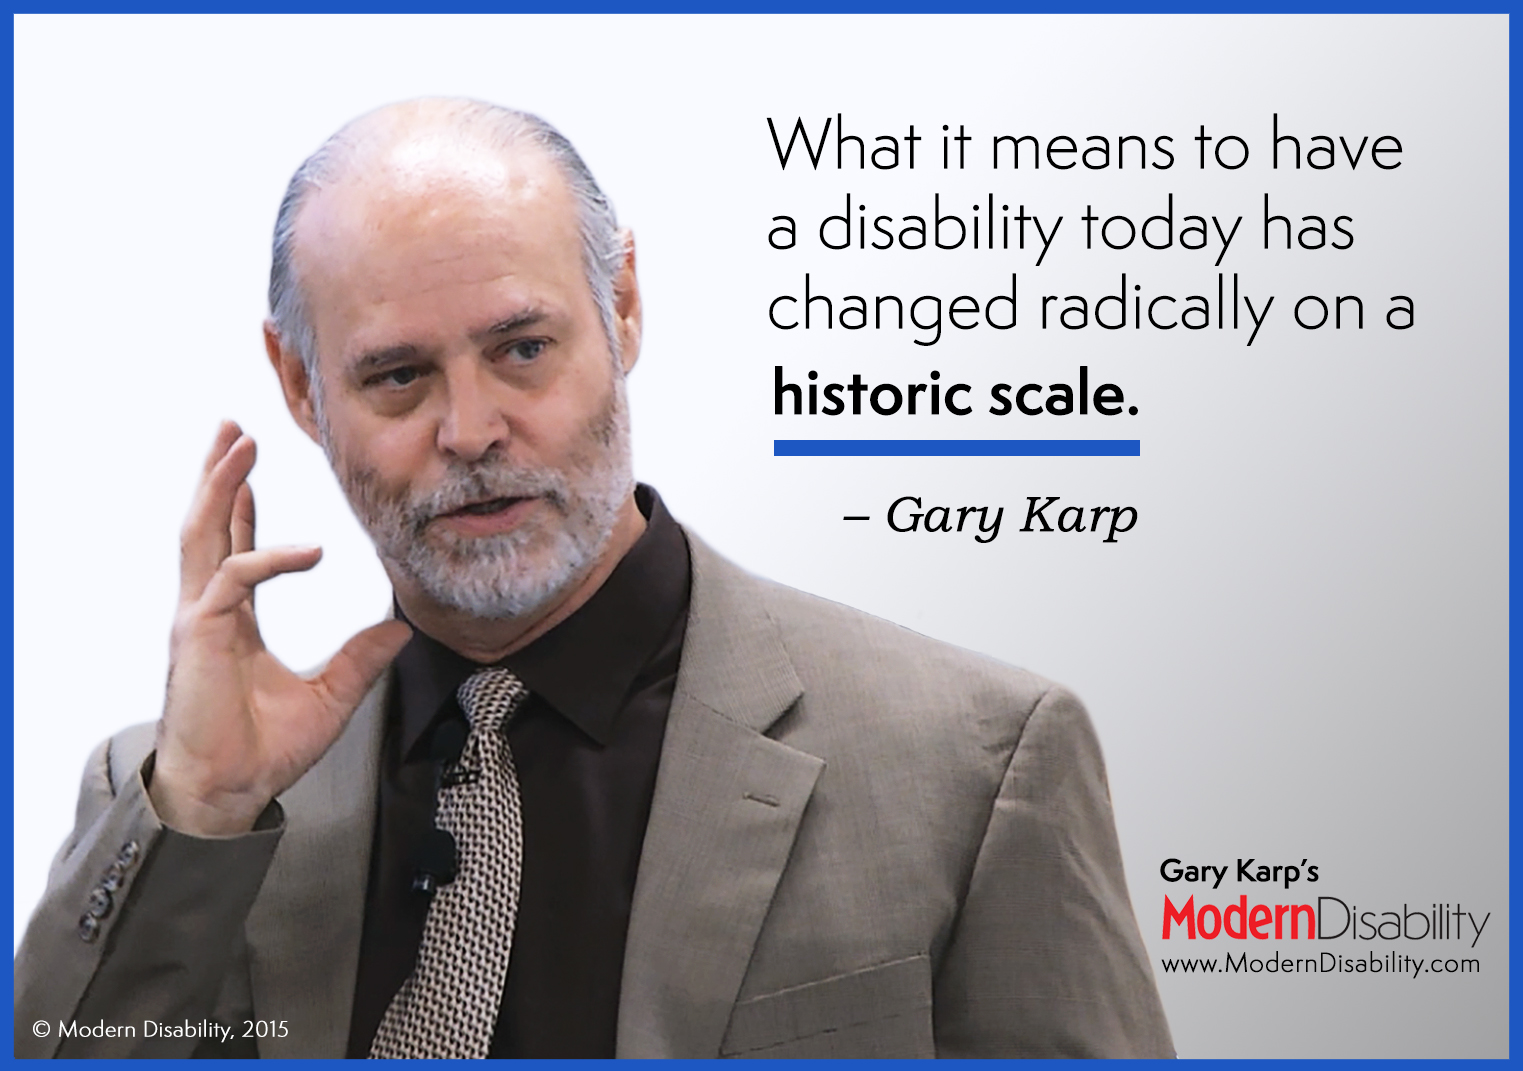 What it means to have a disability today has changed radically on a historic scale.